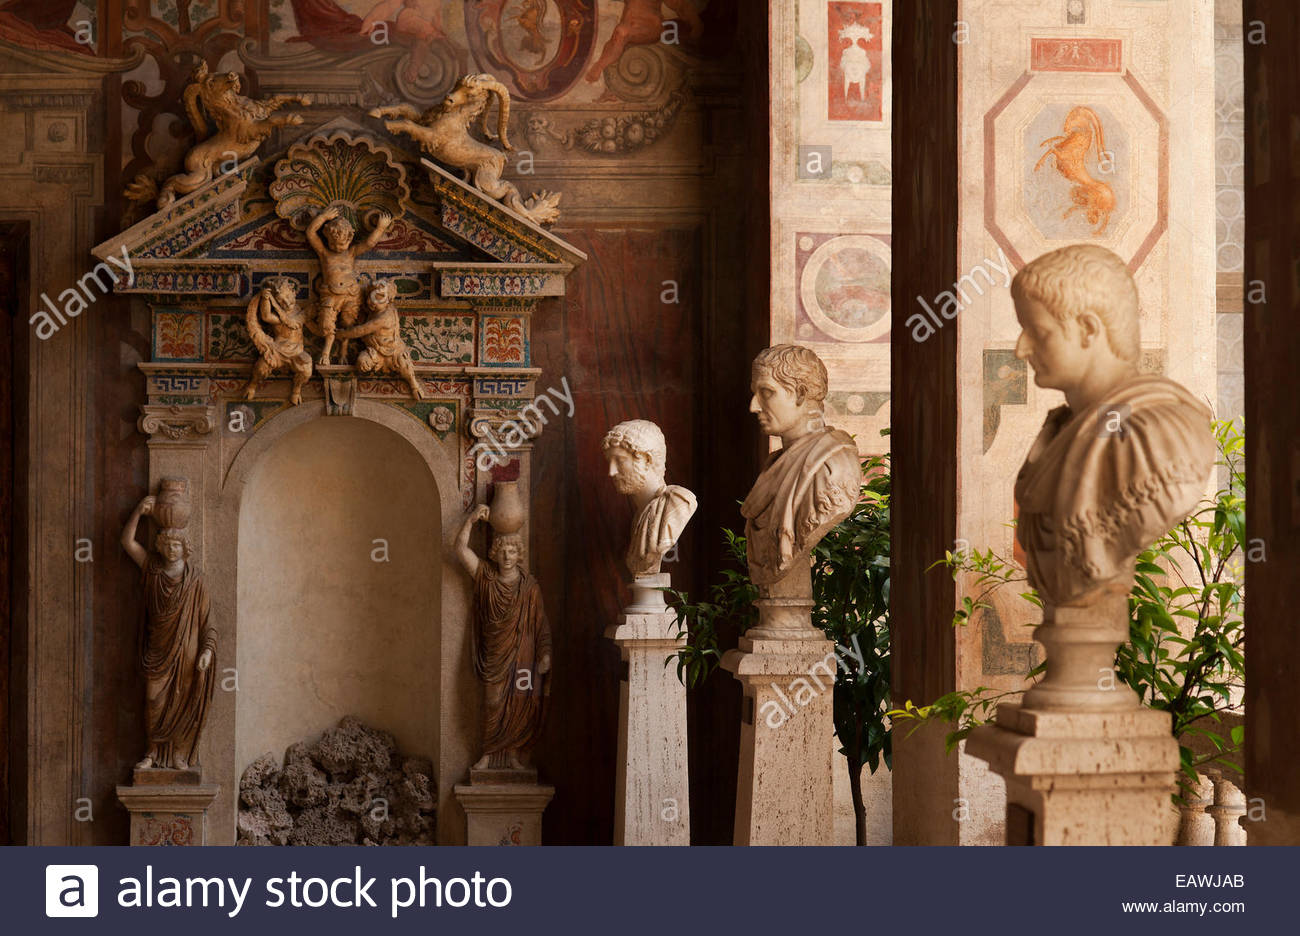 A row of busts of Roman emperors in the Palazzo Altemps in Rome. Stock Photo